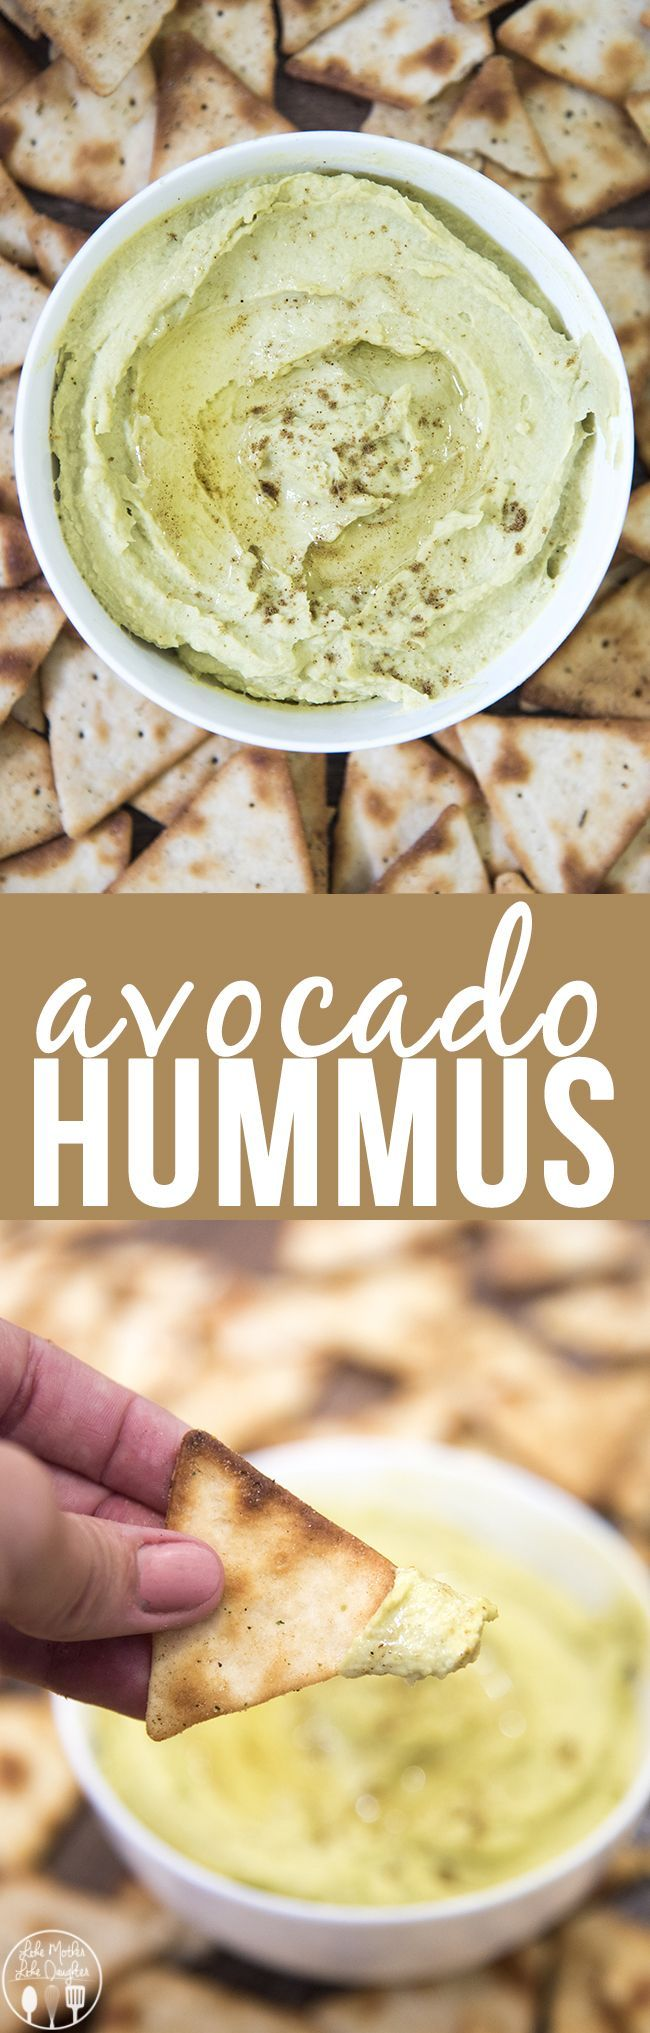 Avocado Hummus - adding avocado to your homemade hummus makes it extra creamy. Perfect paired with pretzels, or pita chips for the perfect healthy snack!